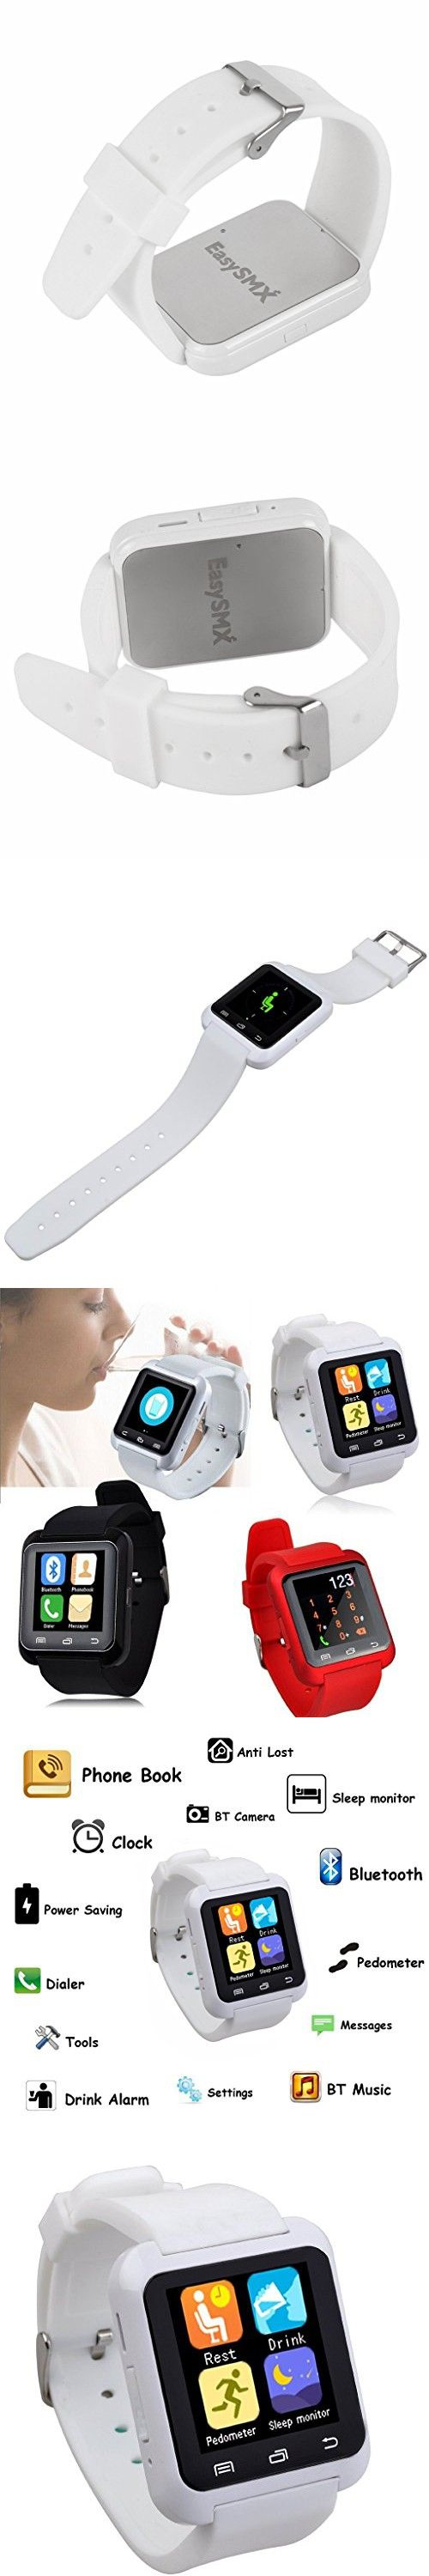 [Christmas New Year Gift] EasySMX Touch Screen Bluetooth 4.0 Smart Watch for Android Smartphones Handsfree Sync Call Message Pedometer Fitness Tracker Sleep Monitor (White)